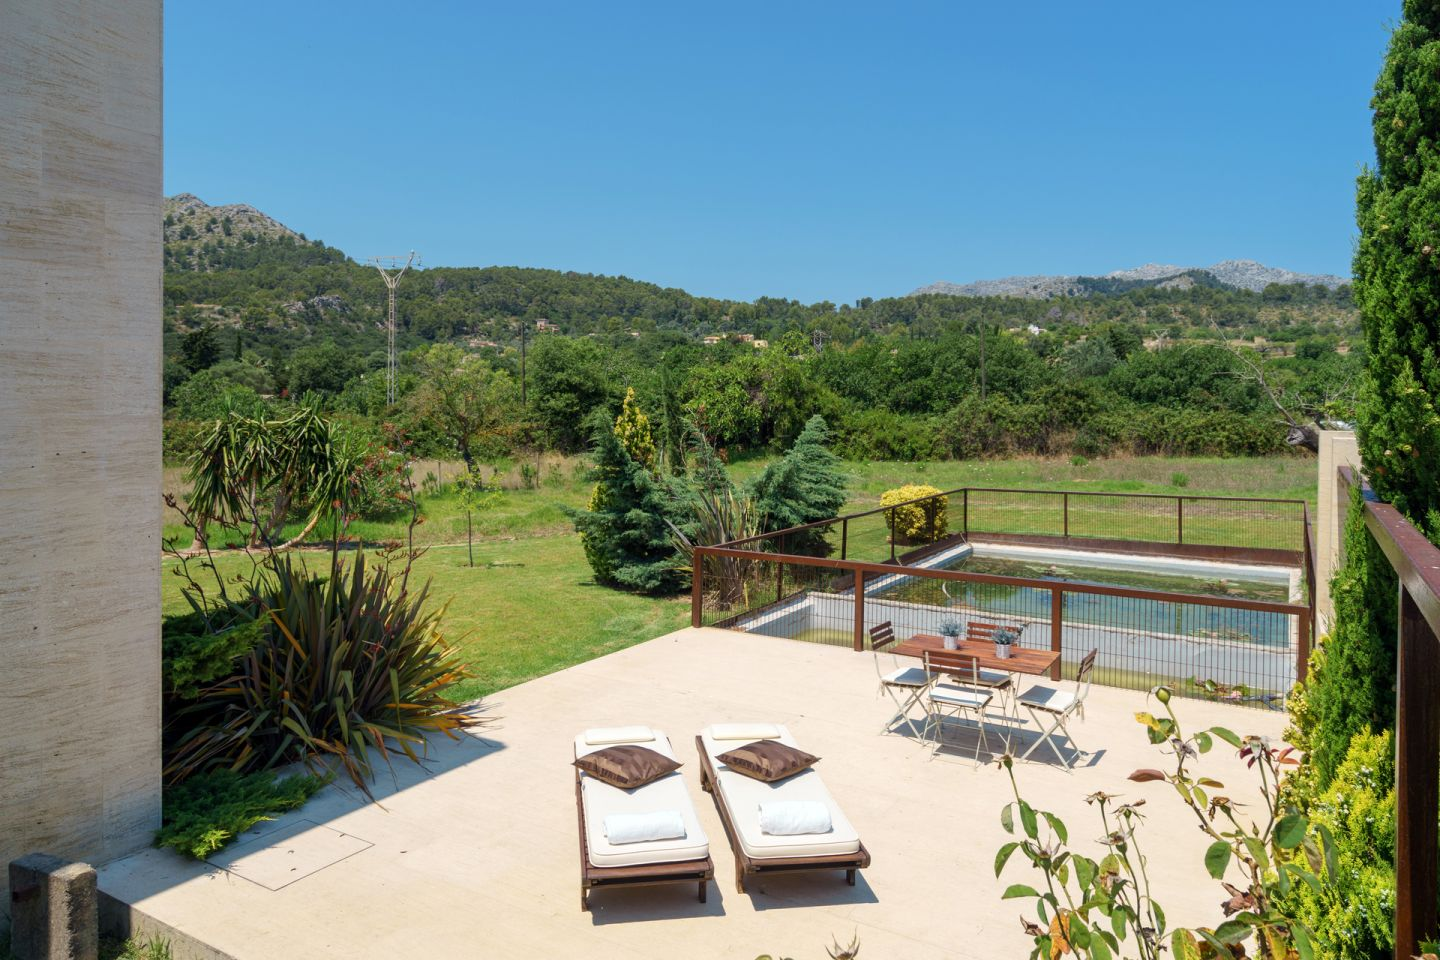 4 Bed Countryside House for sale in POLLENSA 2